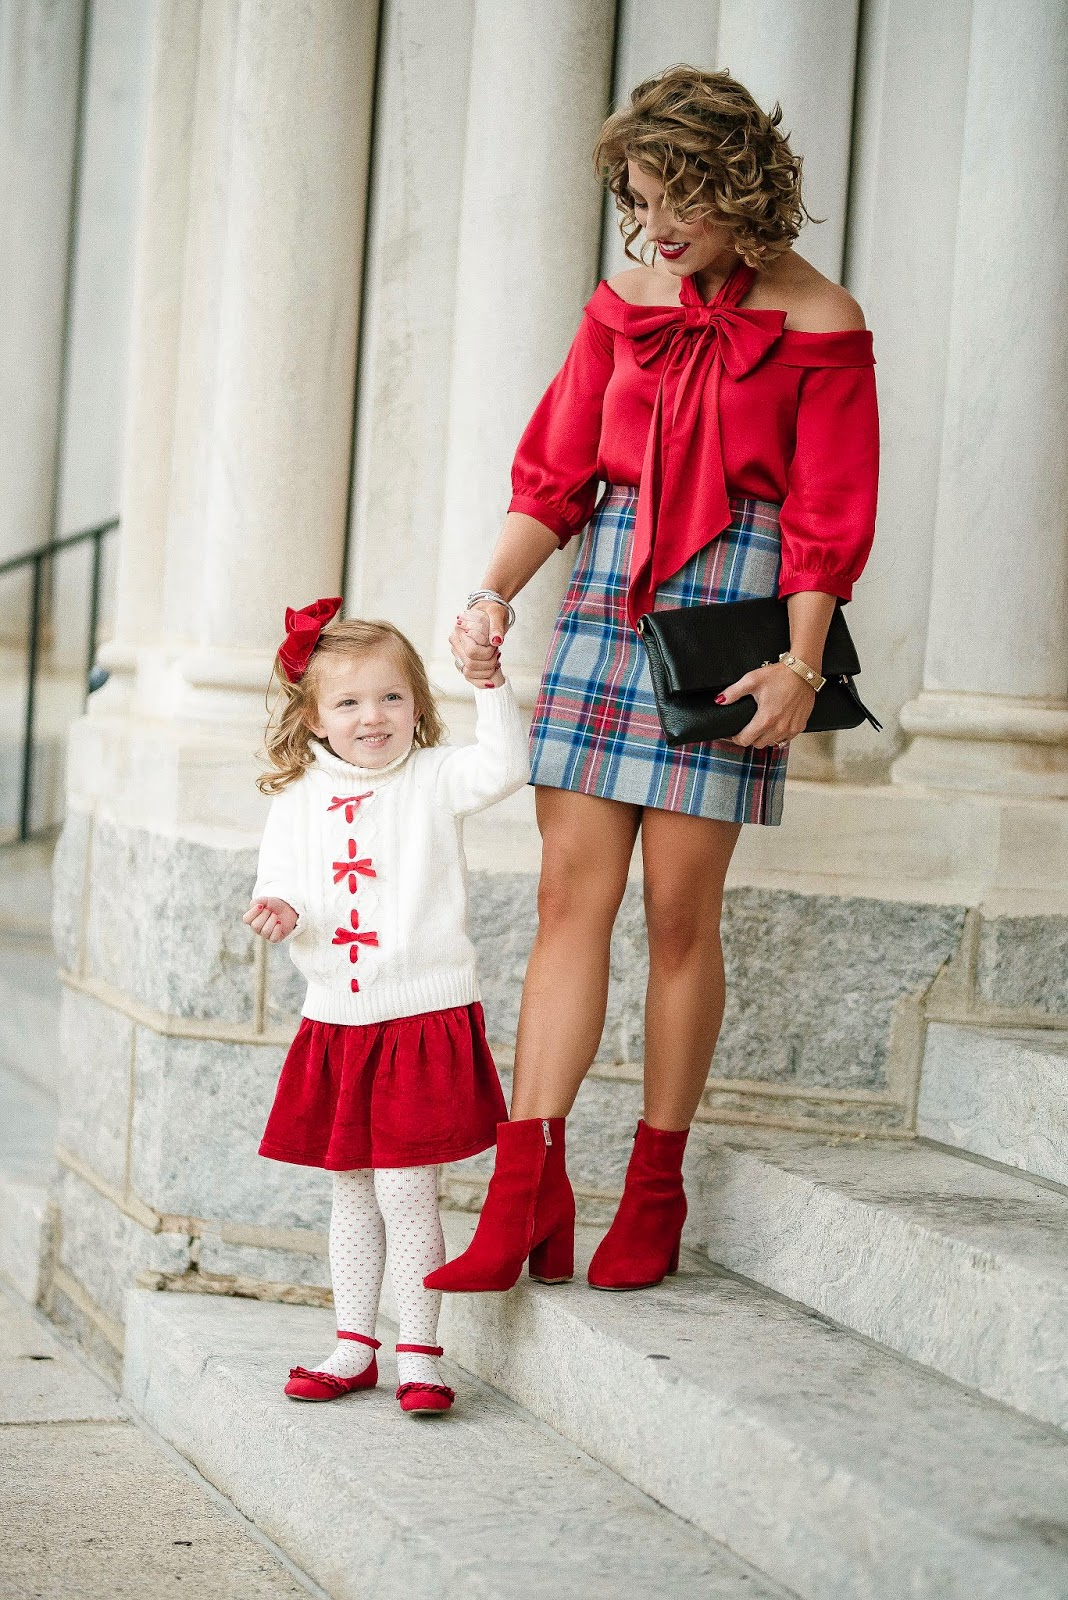 Mommy & Me Dressed in Bows: Under $100 Bow Top + Plaid Skirt - Something Delightful Blog